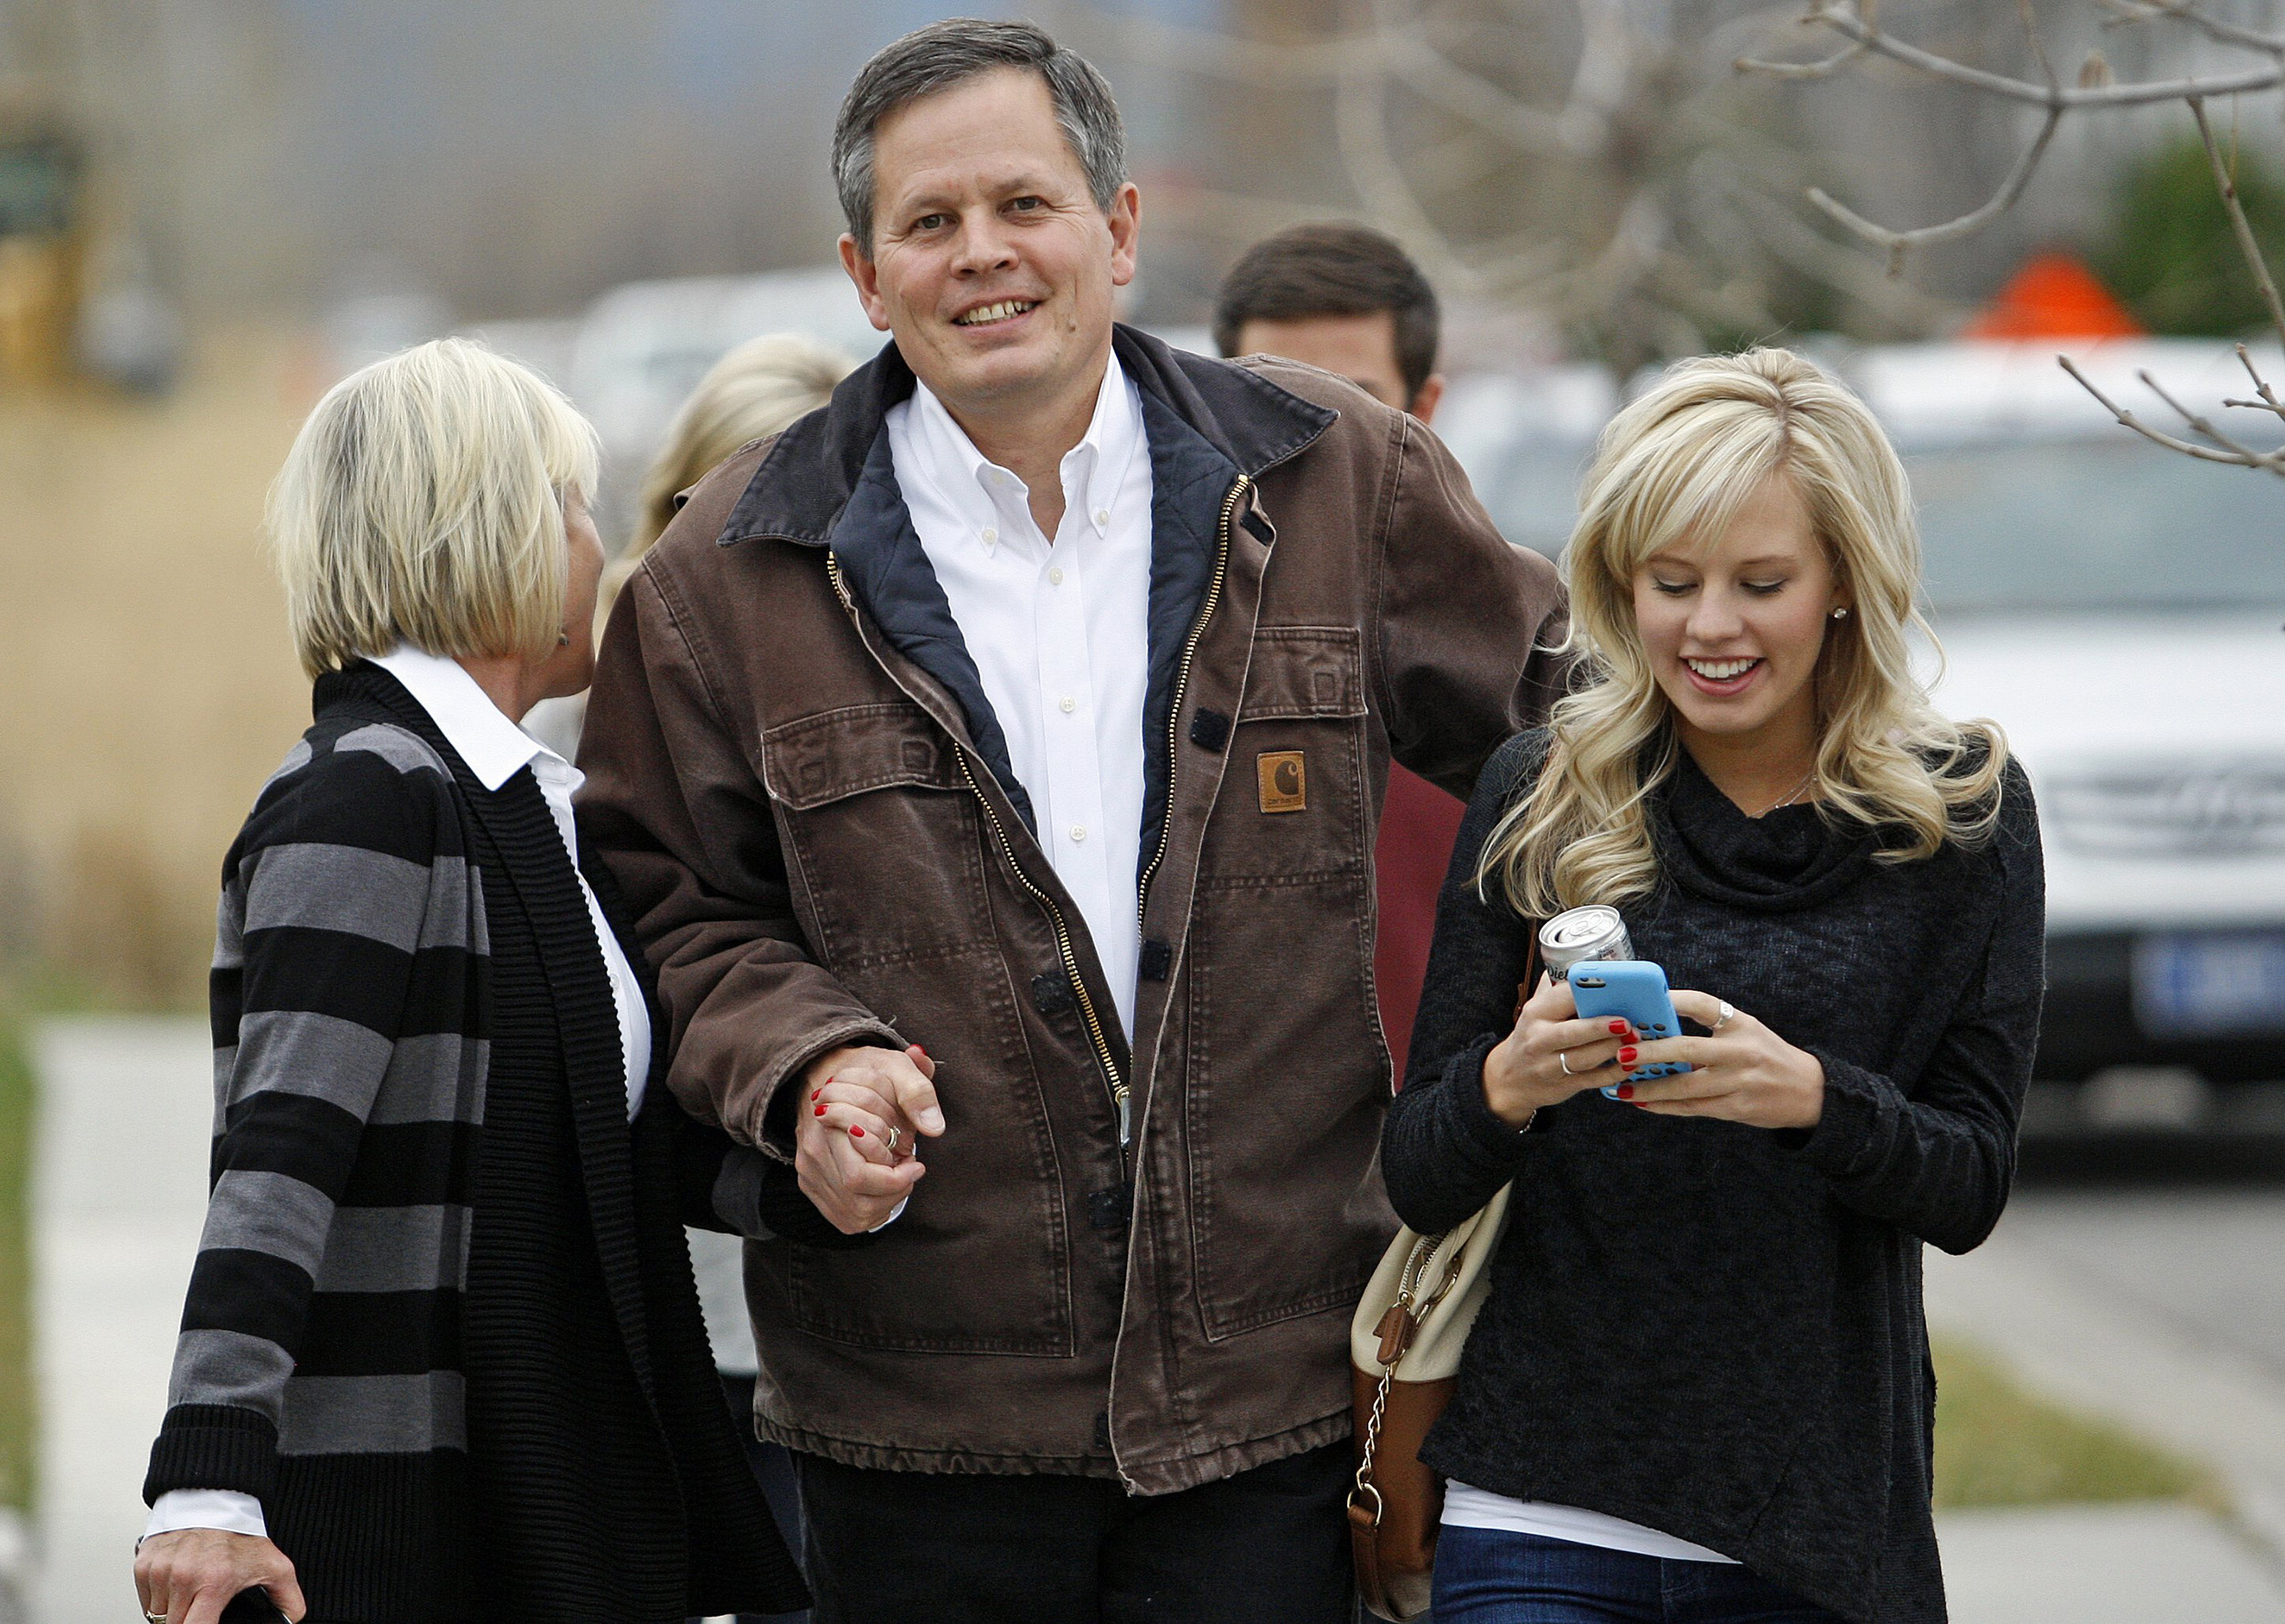 <b>Steve Daines</b>A businessman with Procter &amp; Gamble for 13 years, Daines became a member of the House of Representatives in 2013.